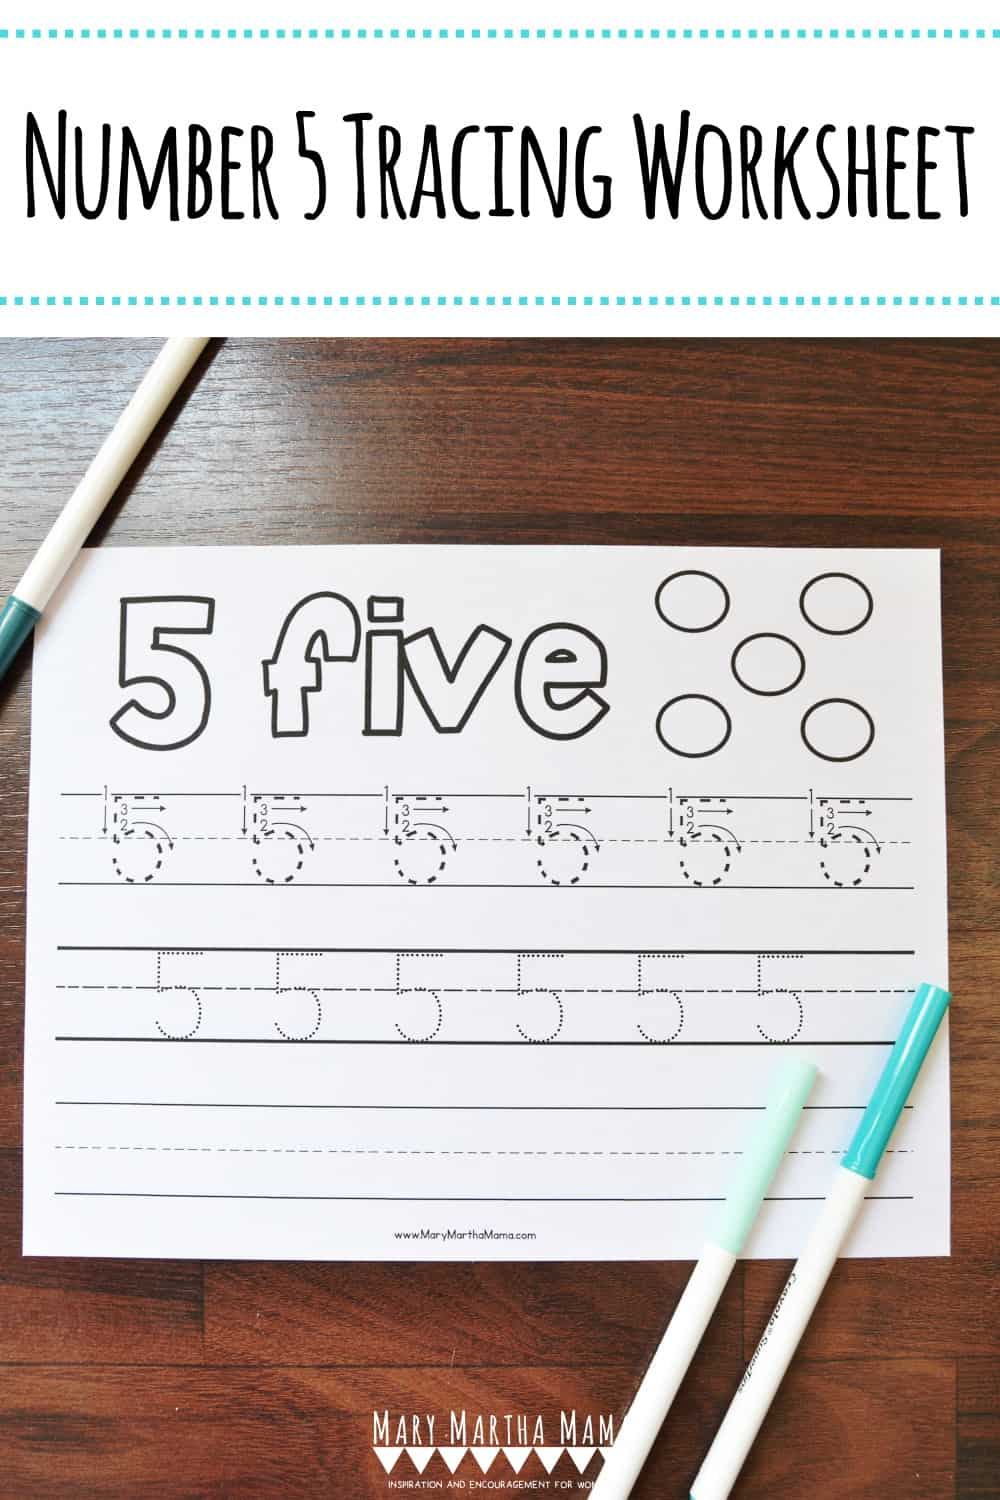 Use this free printable Number 5 Tracing Worksheet to help your kiddo learn how to write number 5. Features tracing with and without arrows to guide.